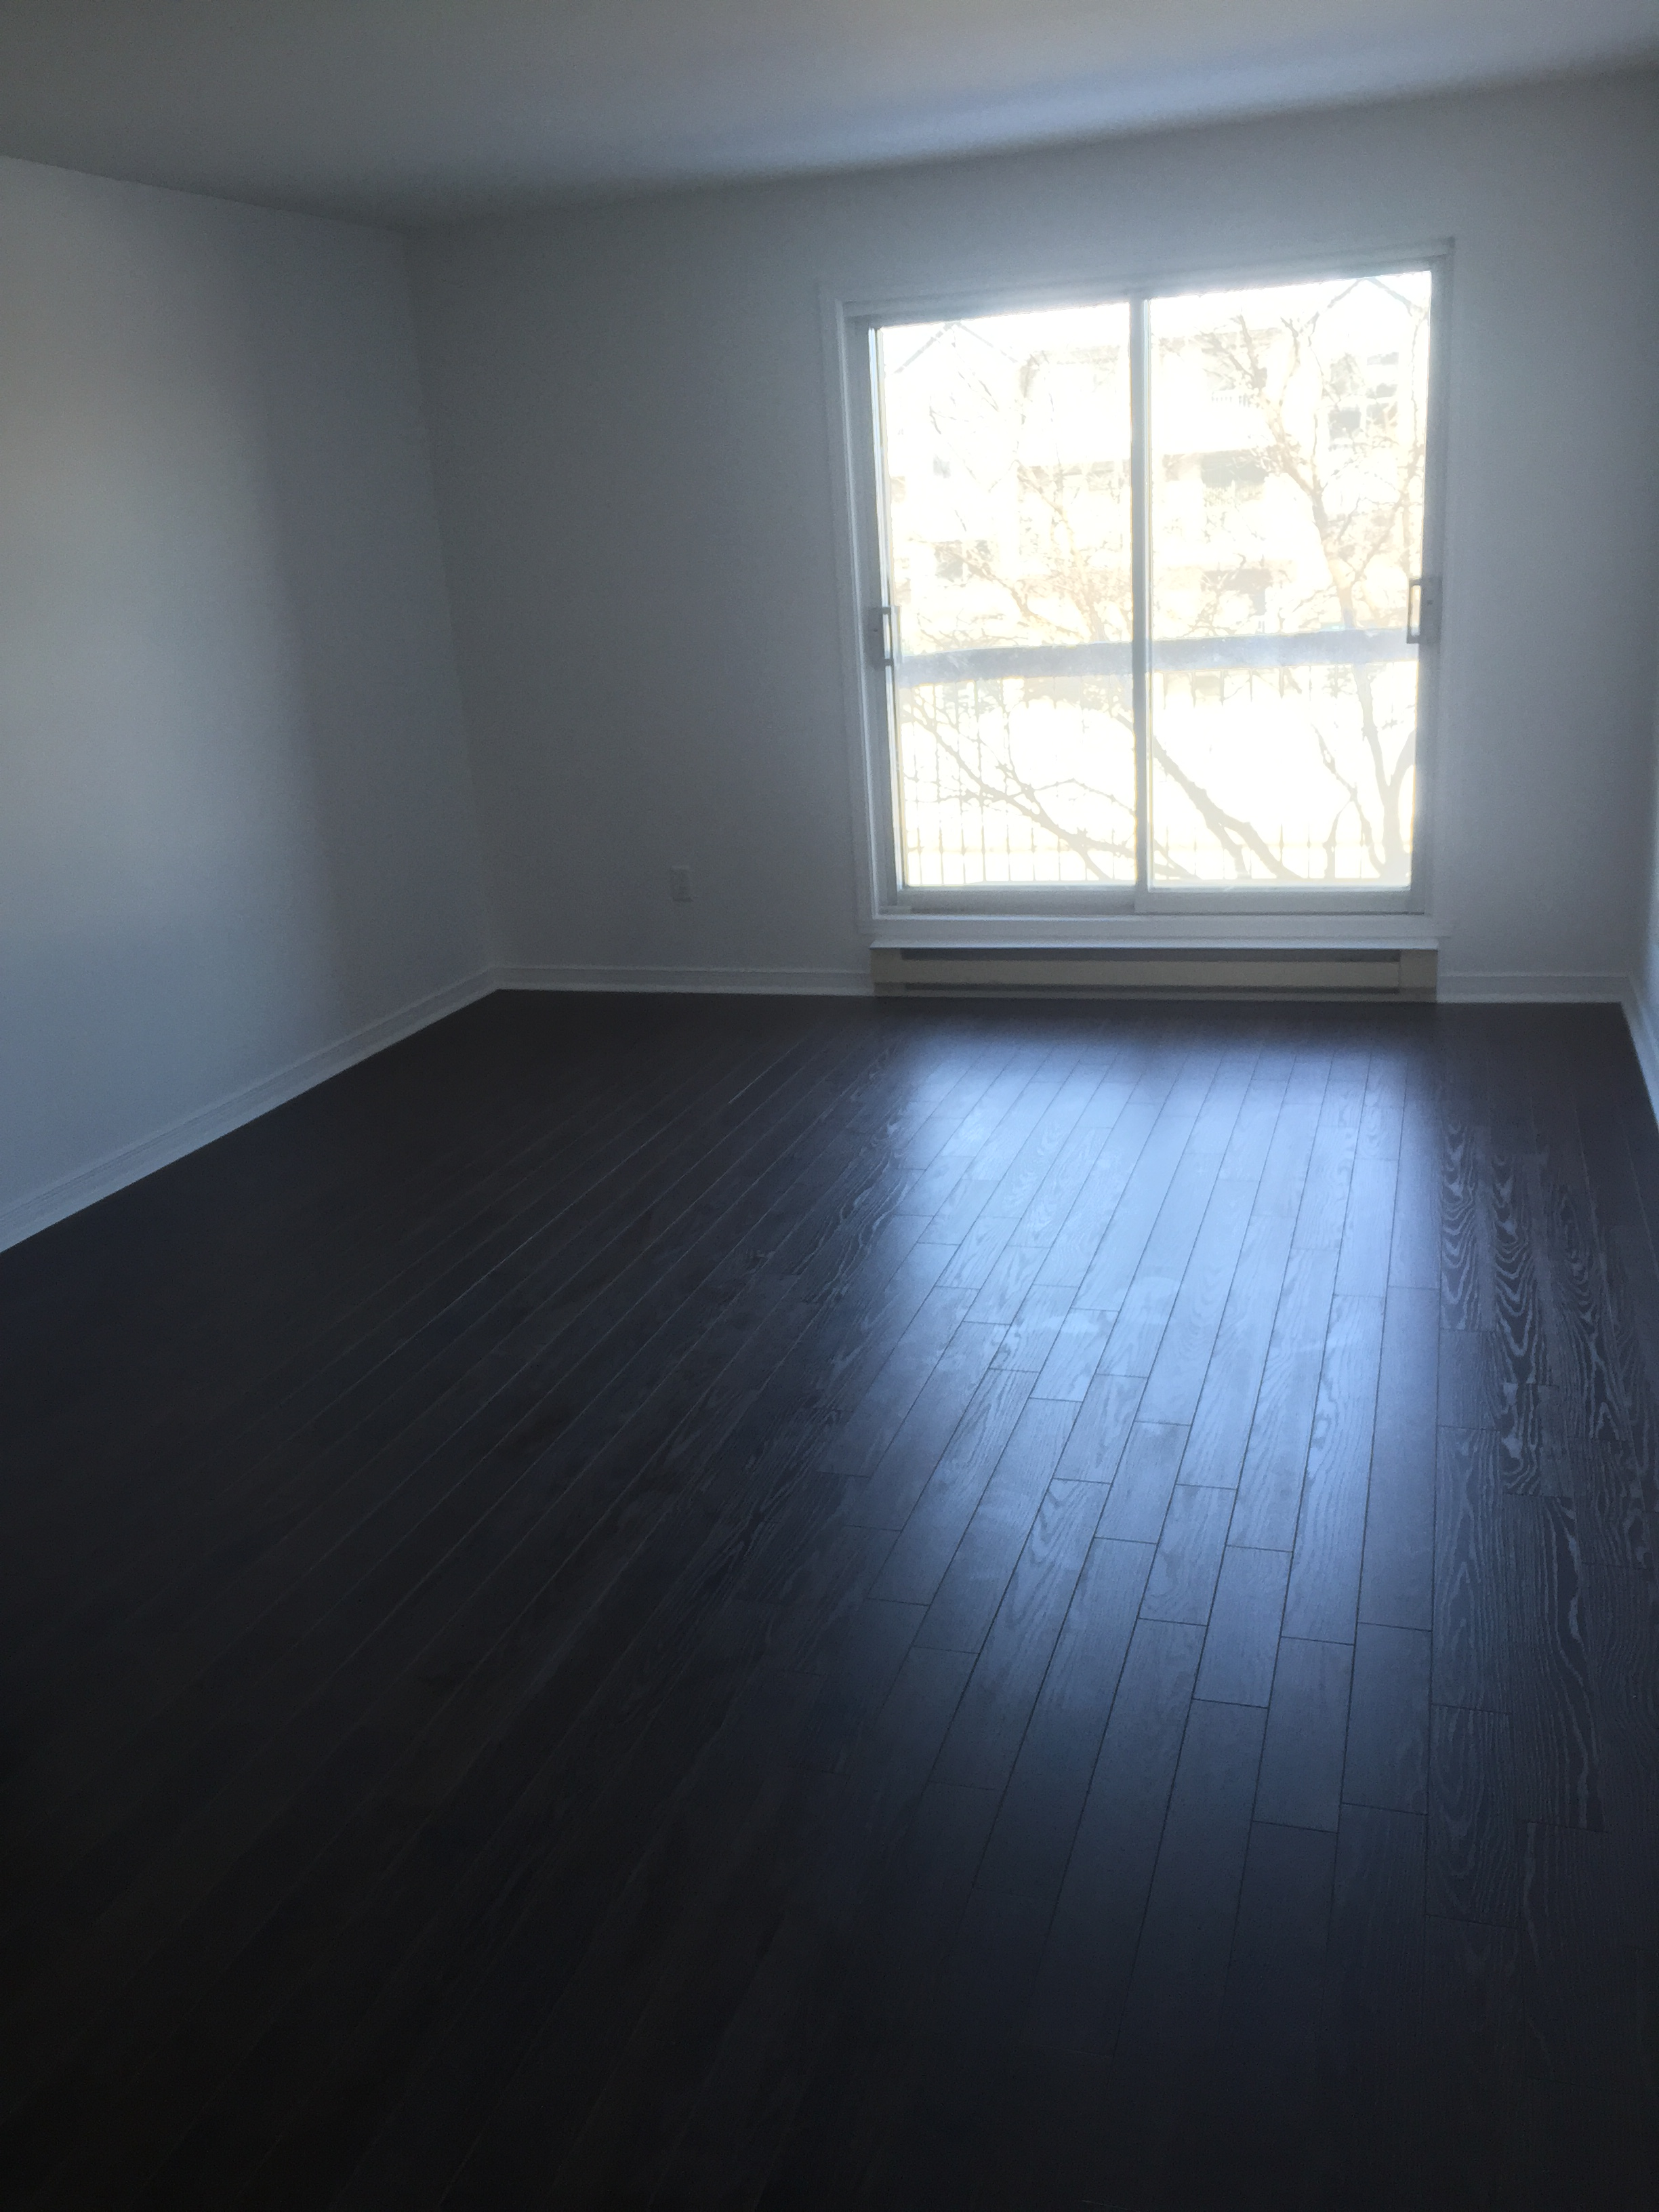 2 bedroom Apartments for rent in Pierrefonds-Roxboro at 18045-18125 Pierrefonds Boulevard - Photo 02 - RentersPages – L266033